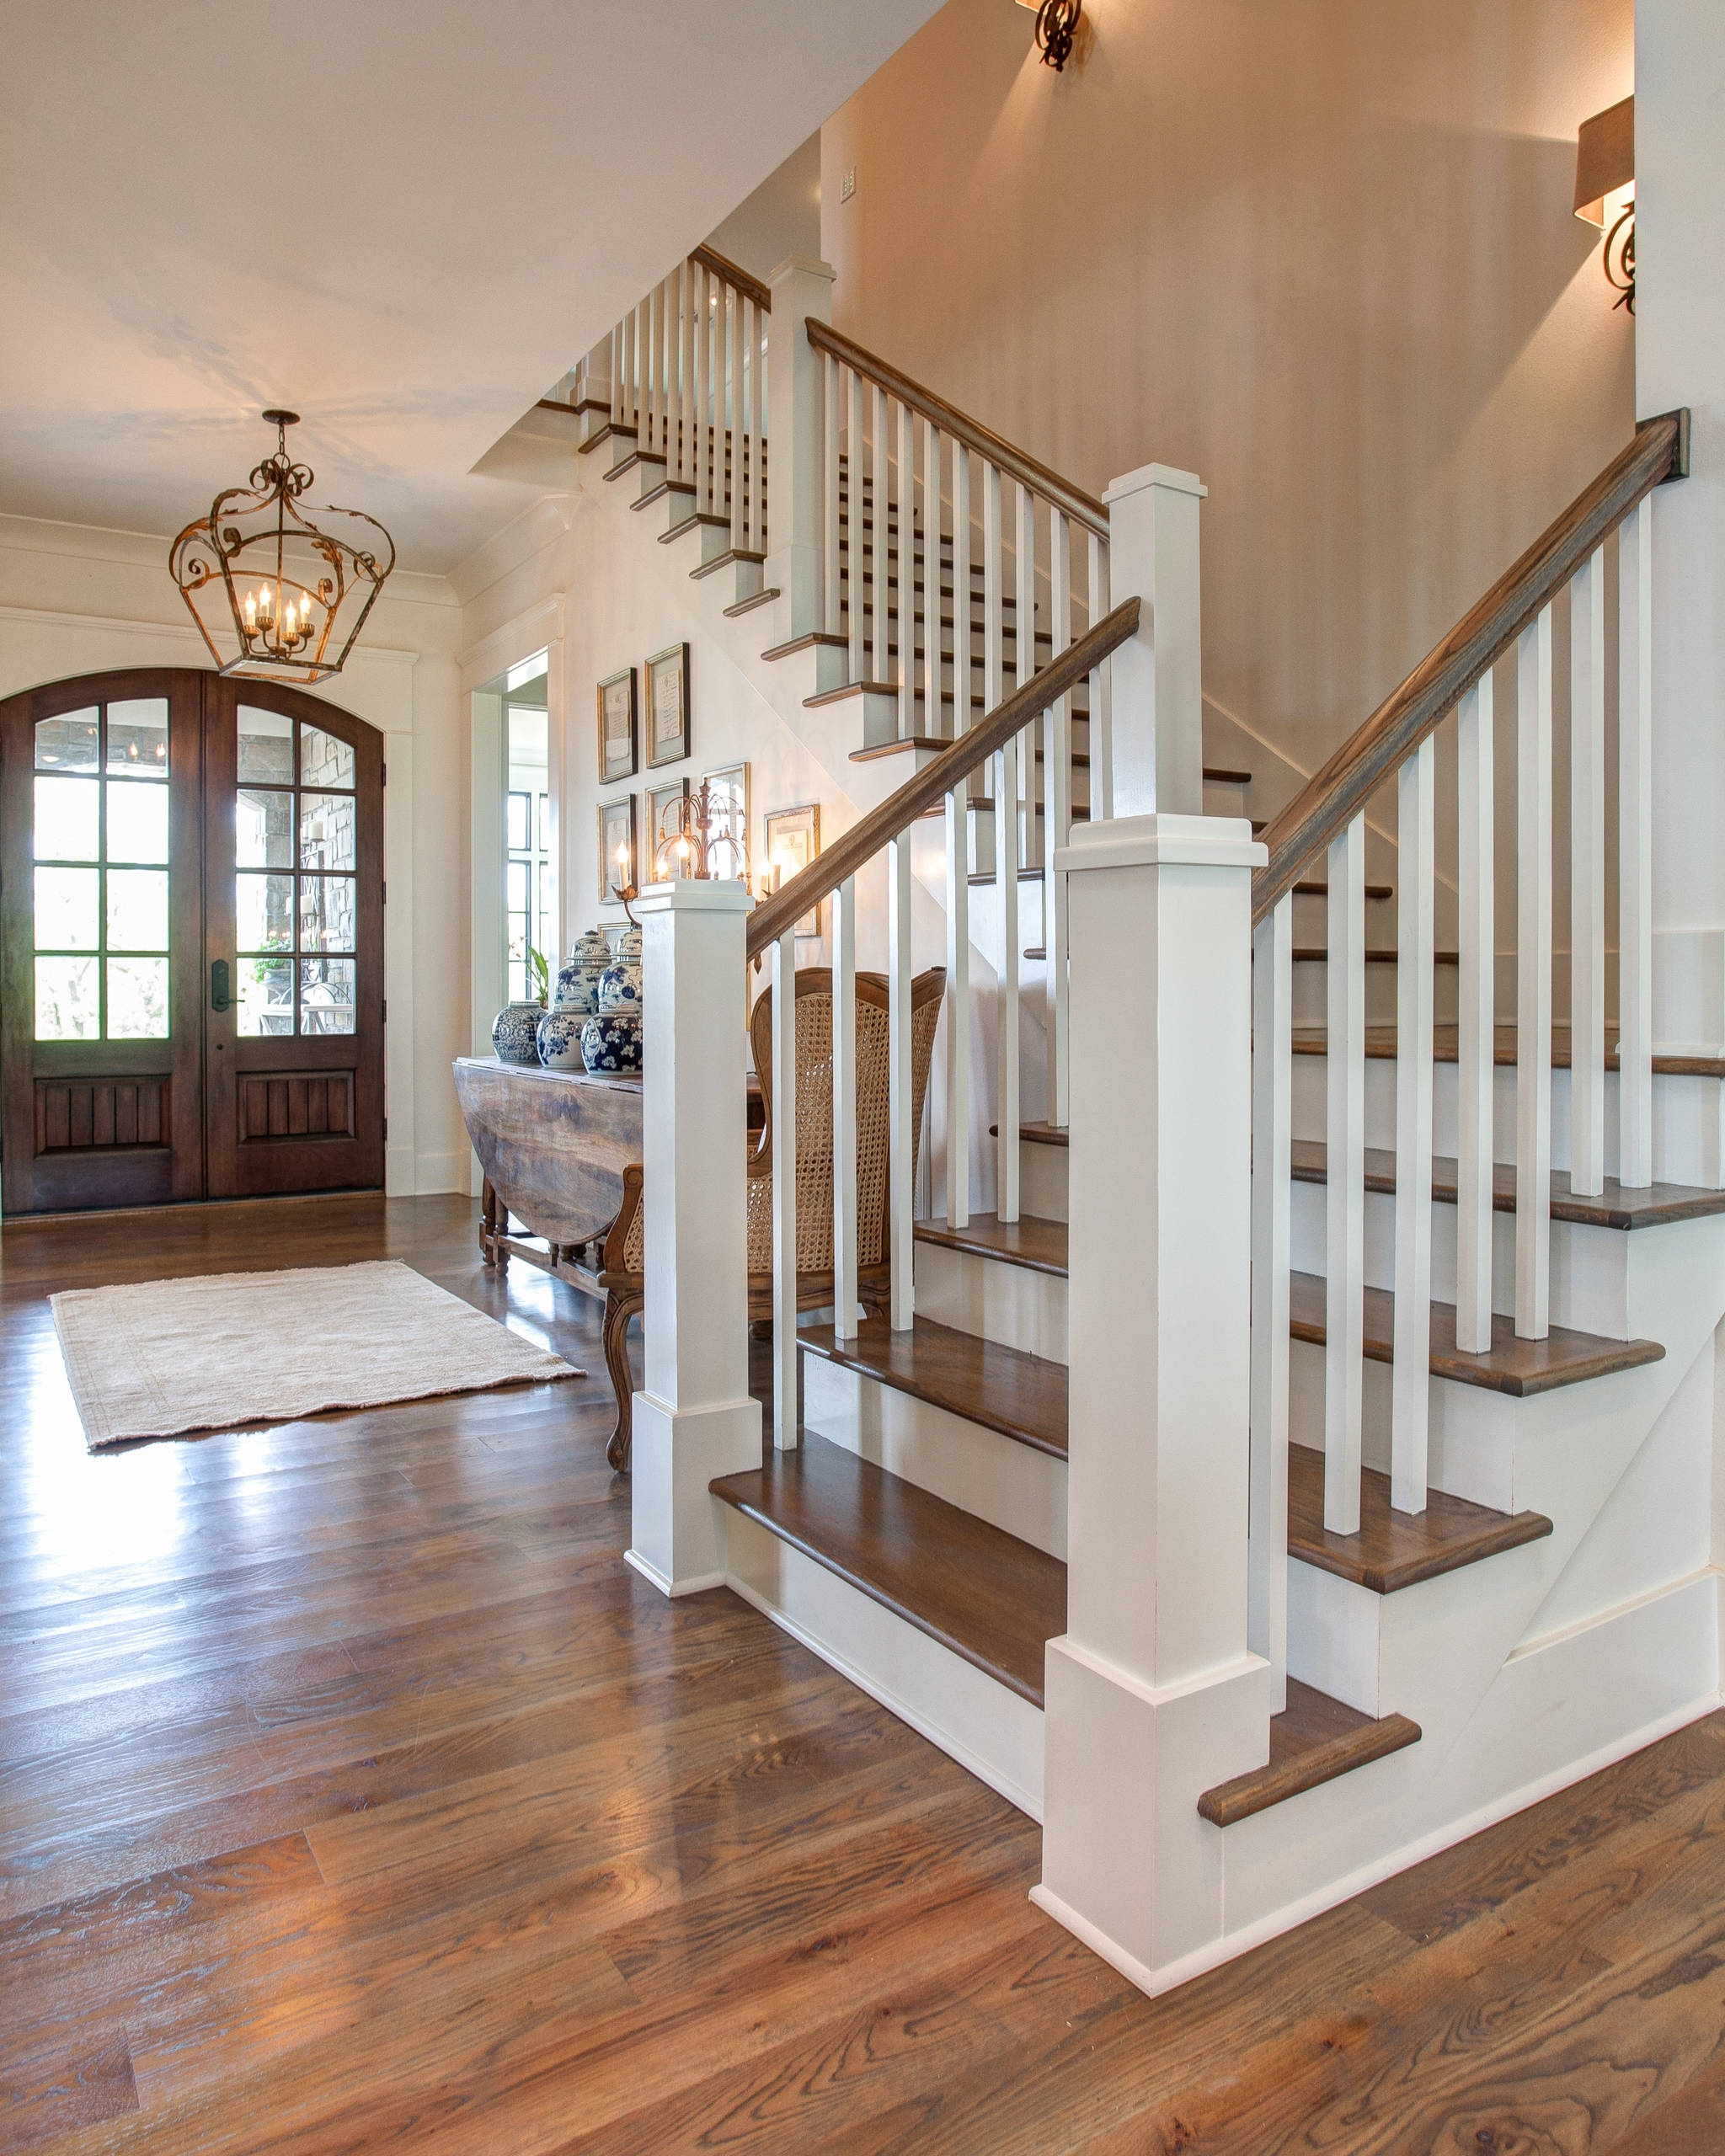 75 Beautiful Wood Stair Railing Pictures Ideas Houzz | Wood Balustrades And Handrails | Porch Railings | Front Porch | Stainless Steel | Stair Railings | Glass Balustrade